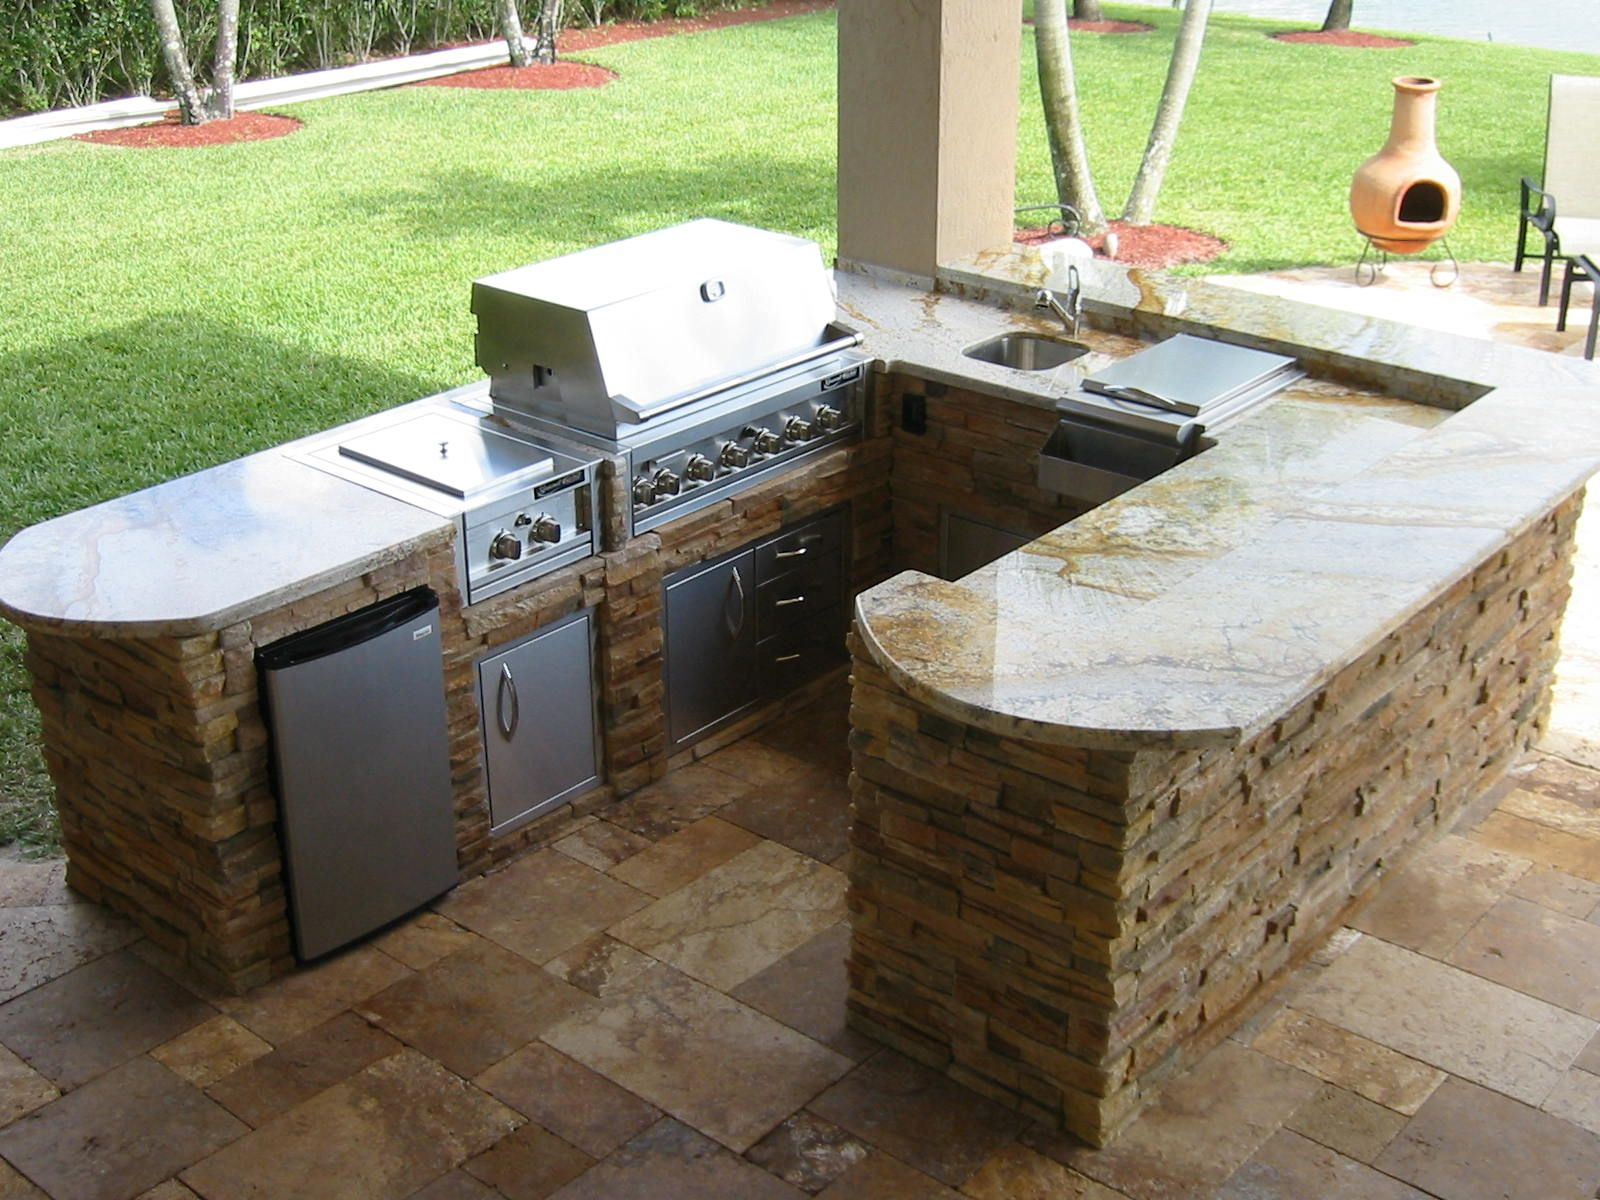 Outdoor grills built in plans grills parts for Outdoor kitchen barbecue grills